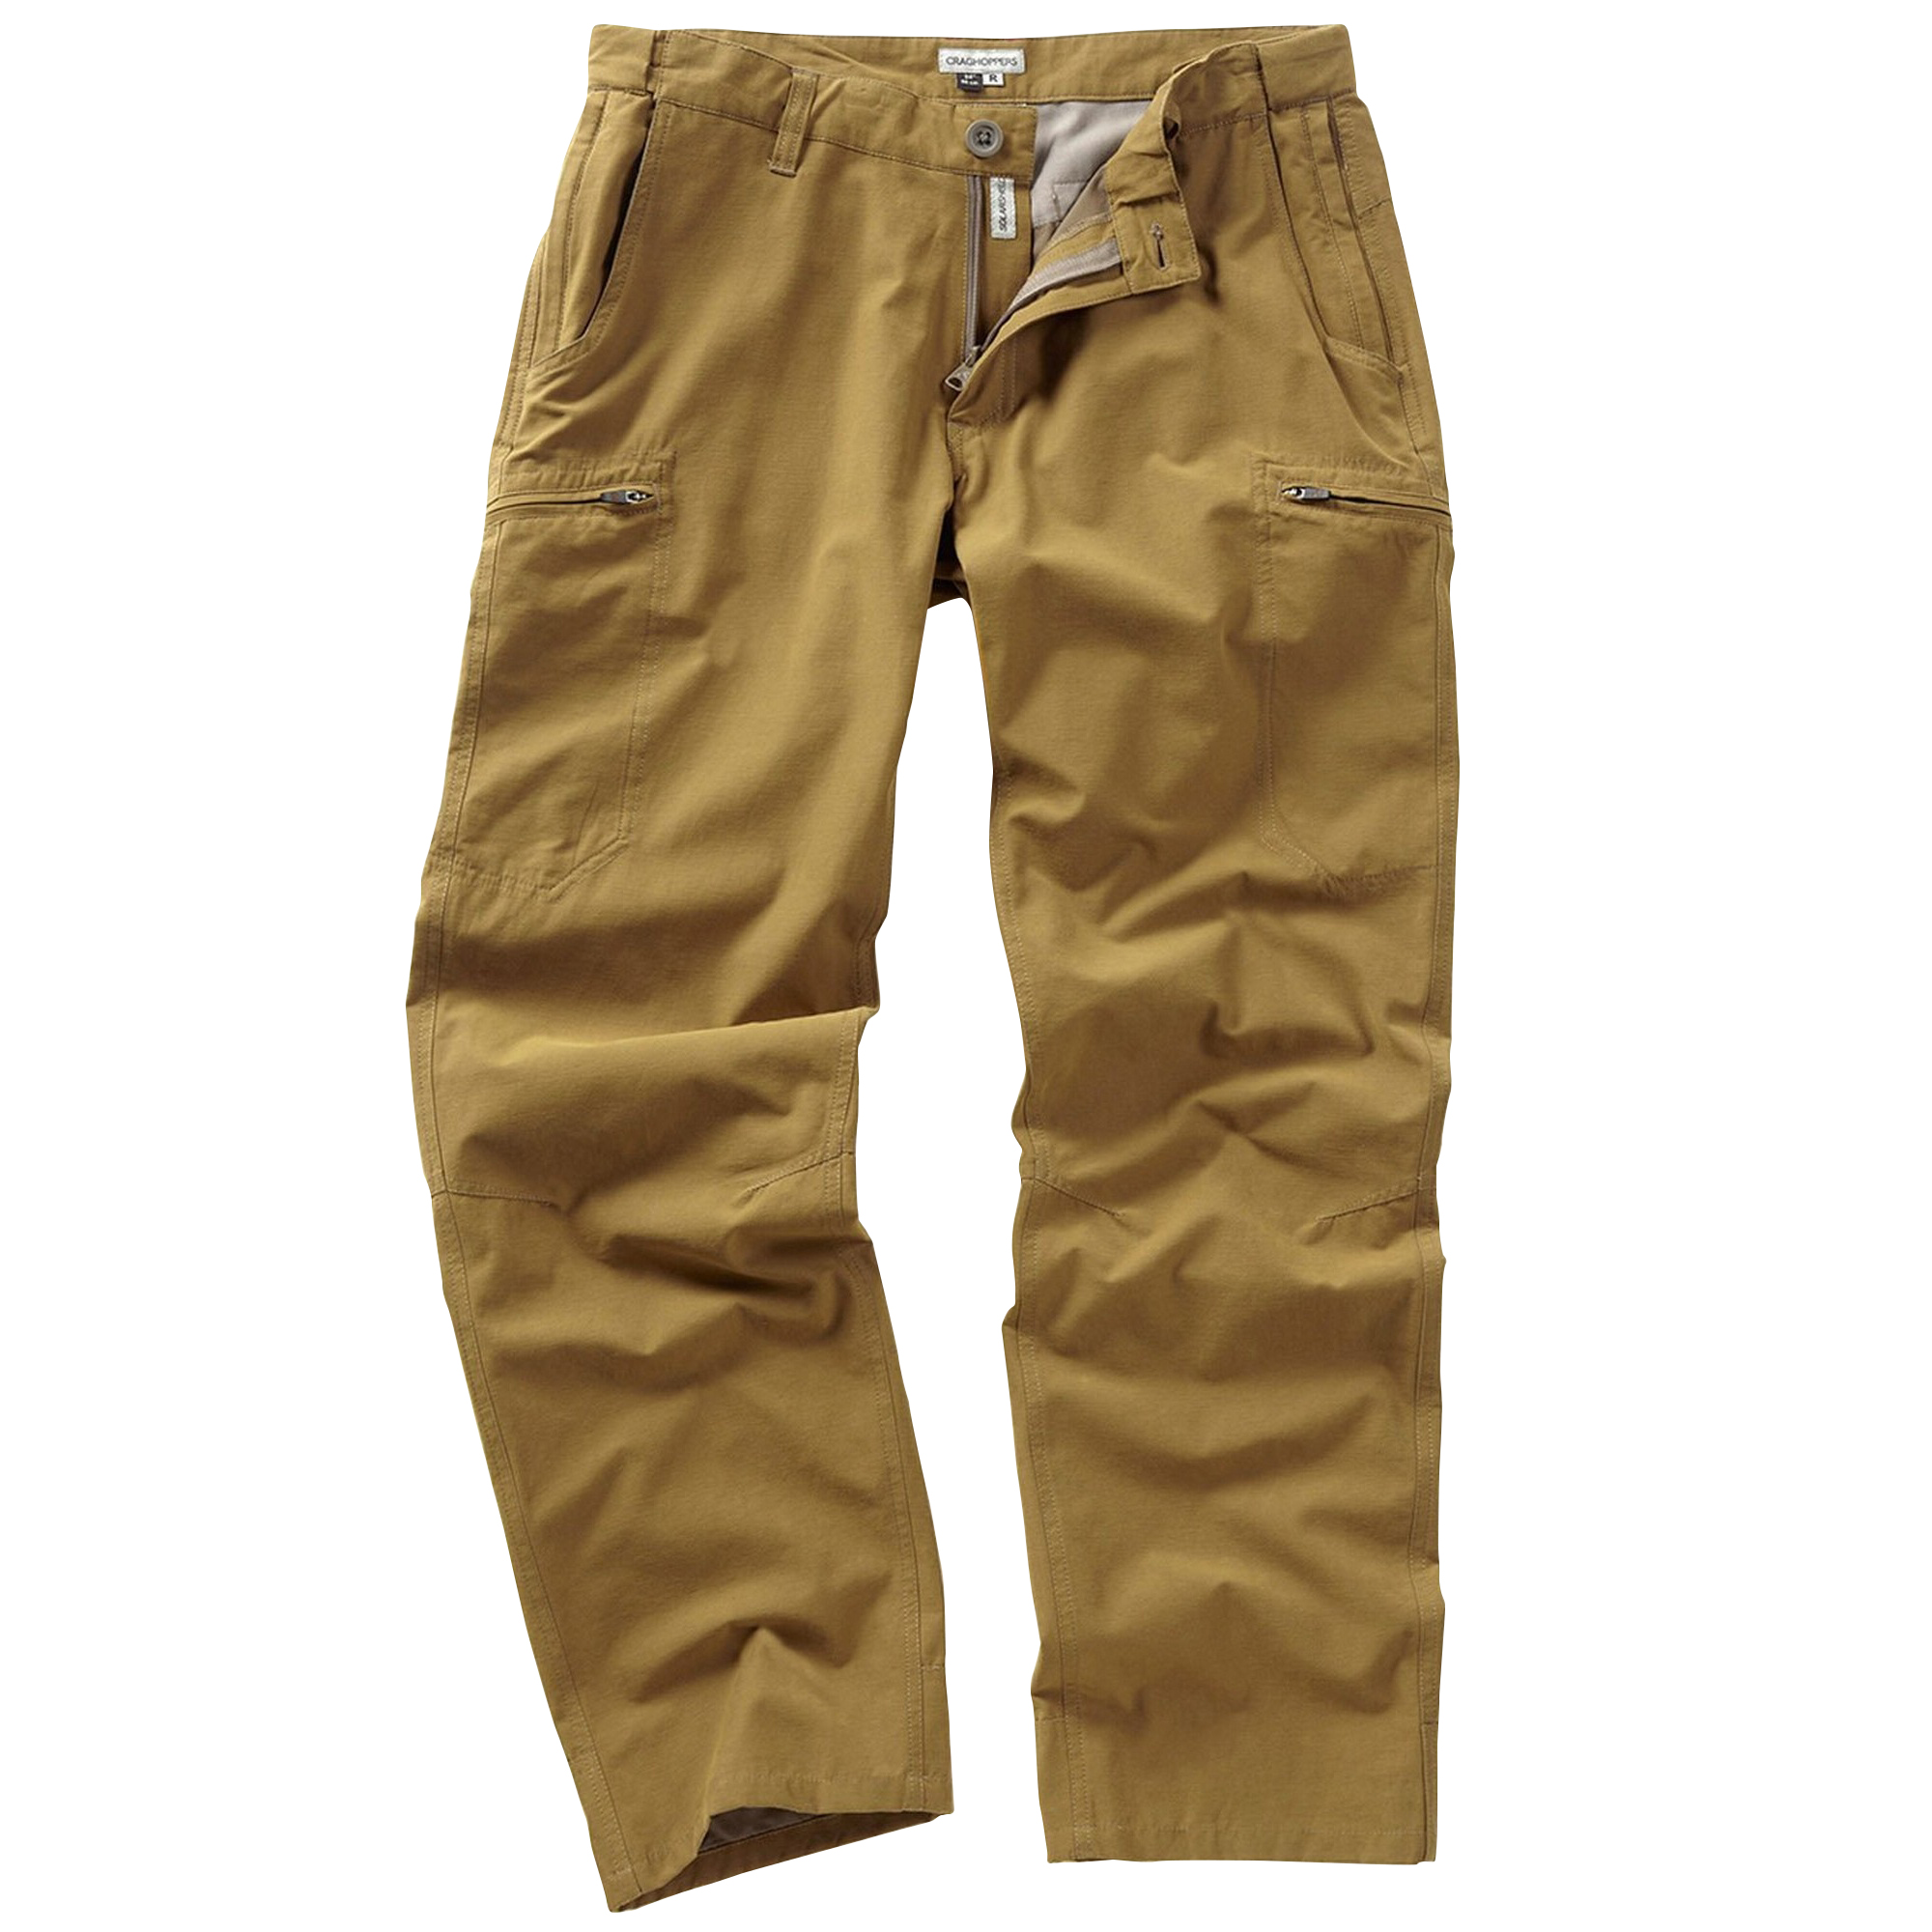 Best Sellers in Men's Hiking Pants #1. FREE SOLDIER Outdoor Men Teflon Scratch-Resistant Pants Four Seasons Hiking Climbing Tactical Trousers out of 5 stars $ - $ # in MEN'S HIKING PANTS. Gift Ideas in MEN'S HIKING PANTS ‹ Any Department.